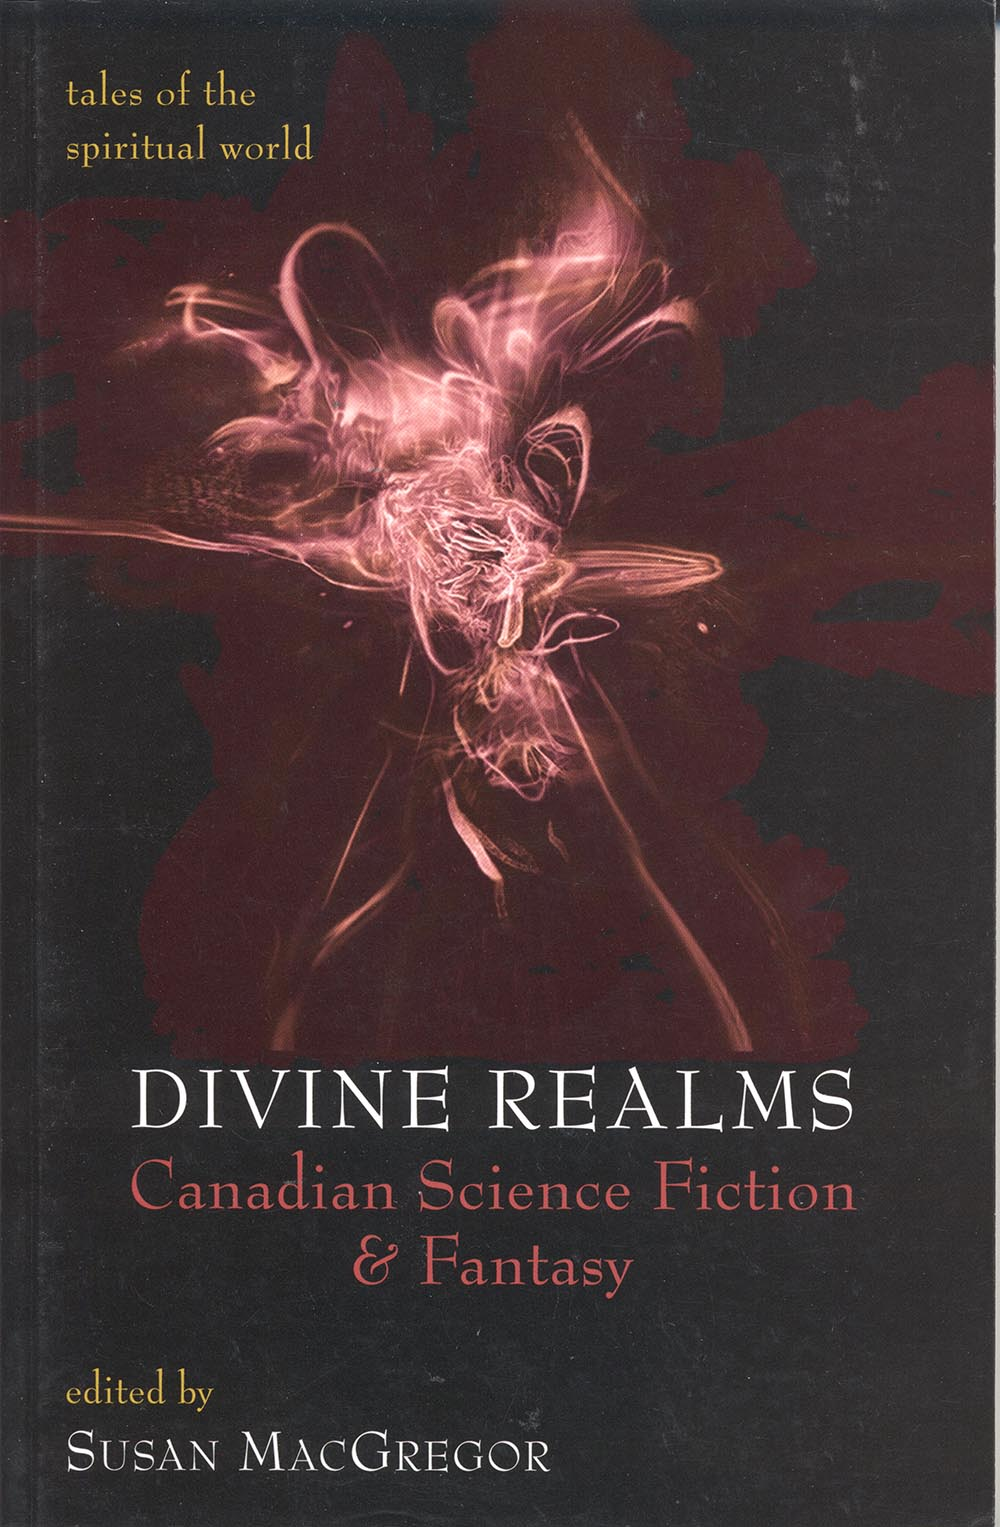 Divine Realms edited by Susan MacGregor